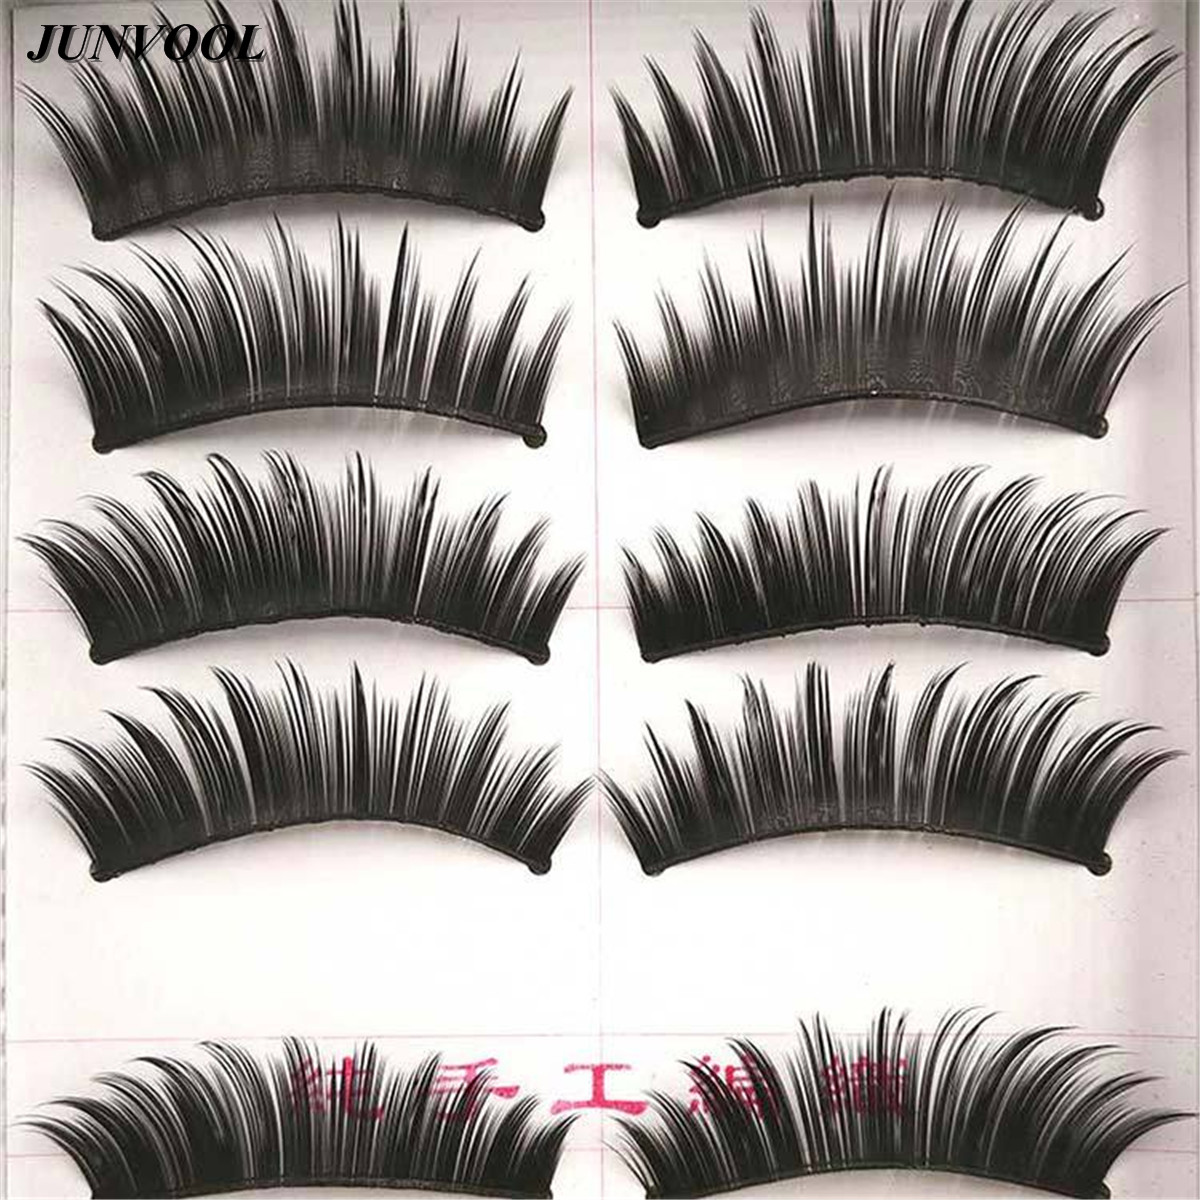 50 Pairs/Lot Long Black Thick False Fake Eyelashes Extension Lashes For Club Makeup Eye Lash Thick Long Beauty Tools For Women